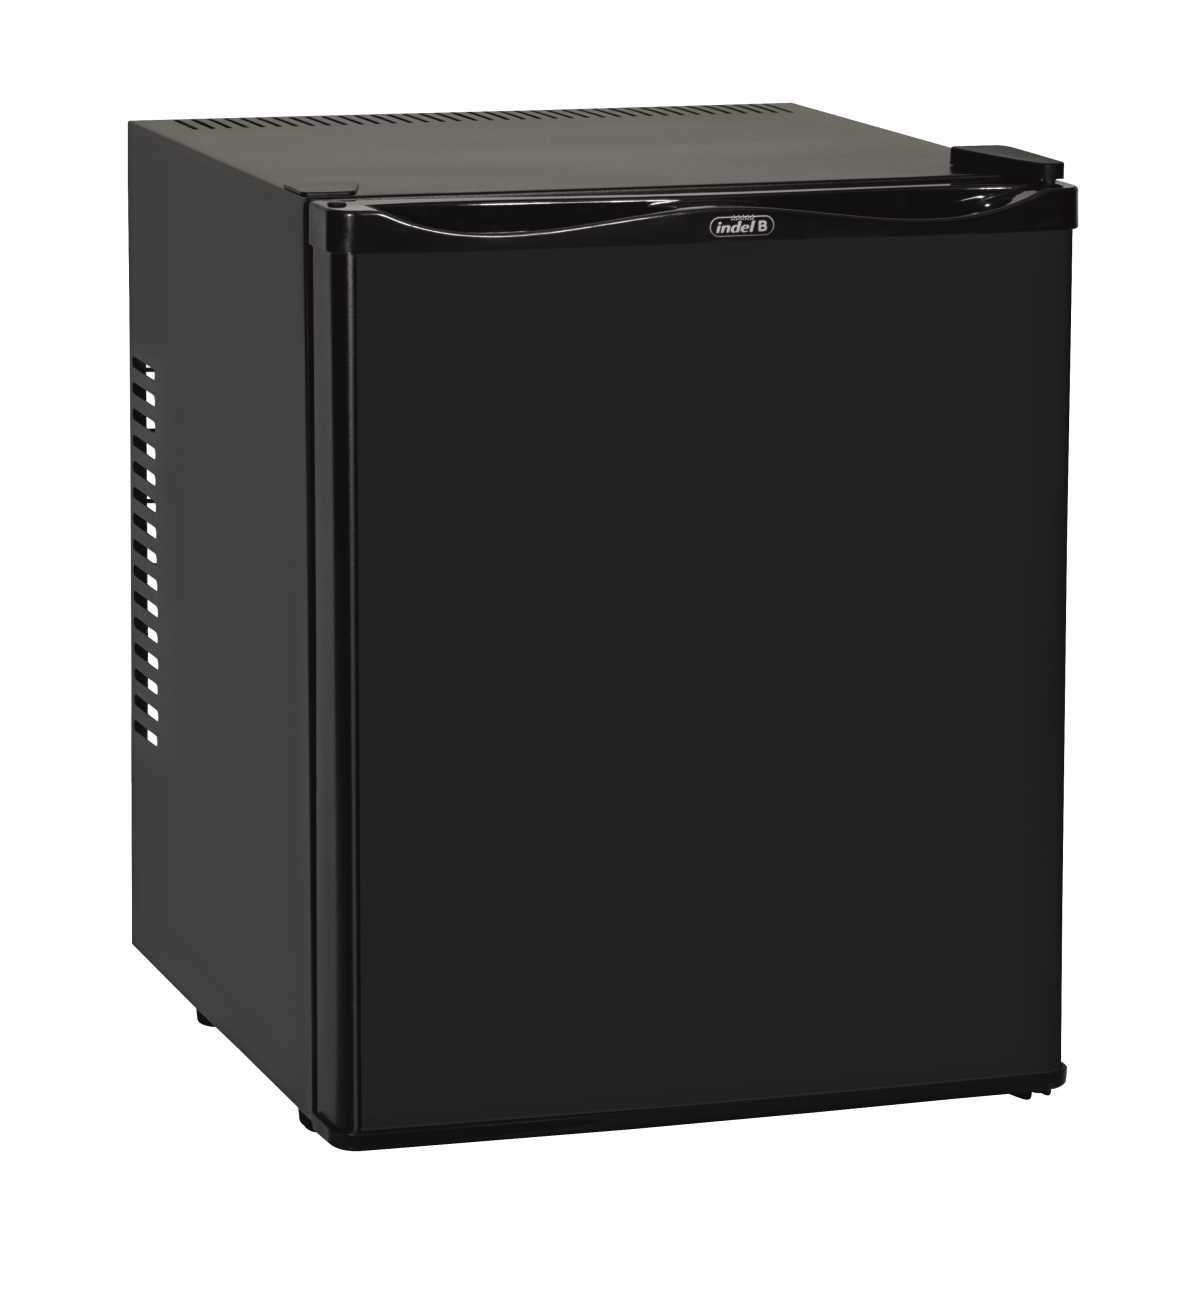 INDEL B Breeze T30 Minibar